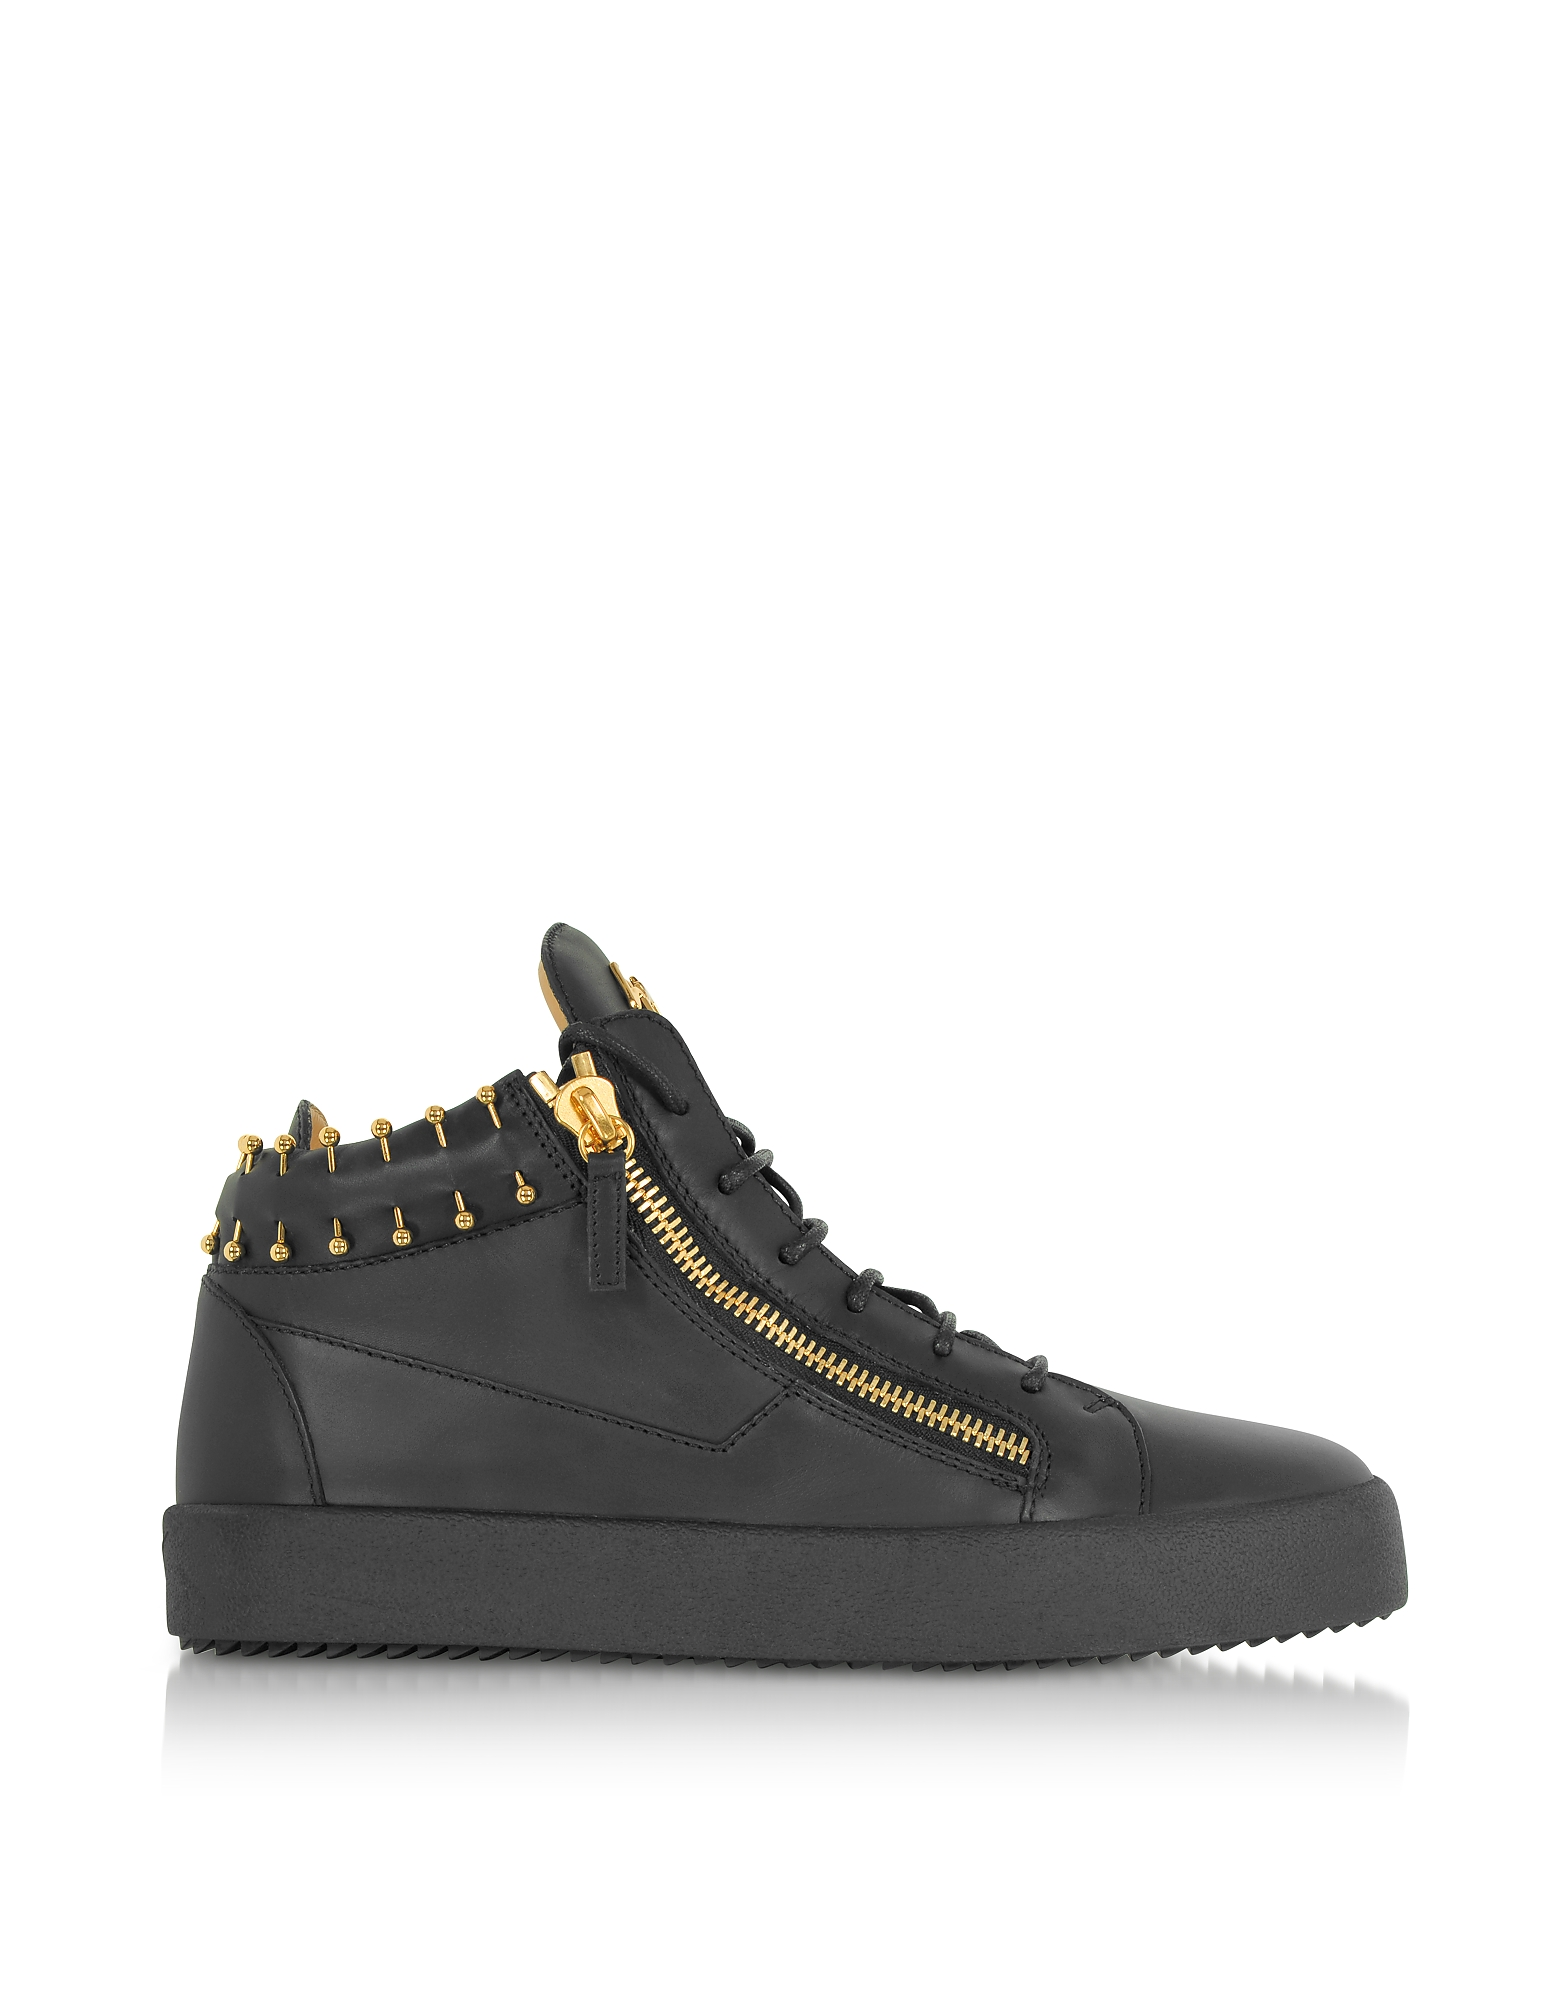 Giuseppe Zanotti Shoes, Black Leather Mid-Top Men's Sneakers w/Golden Metal Piercings